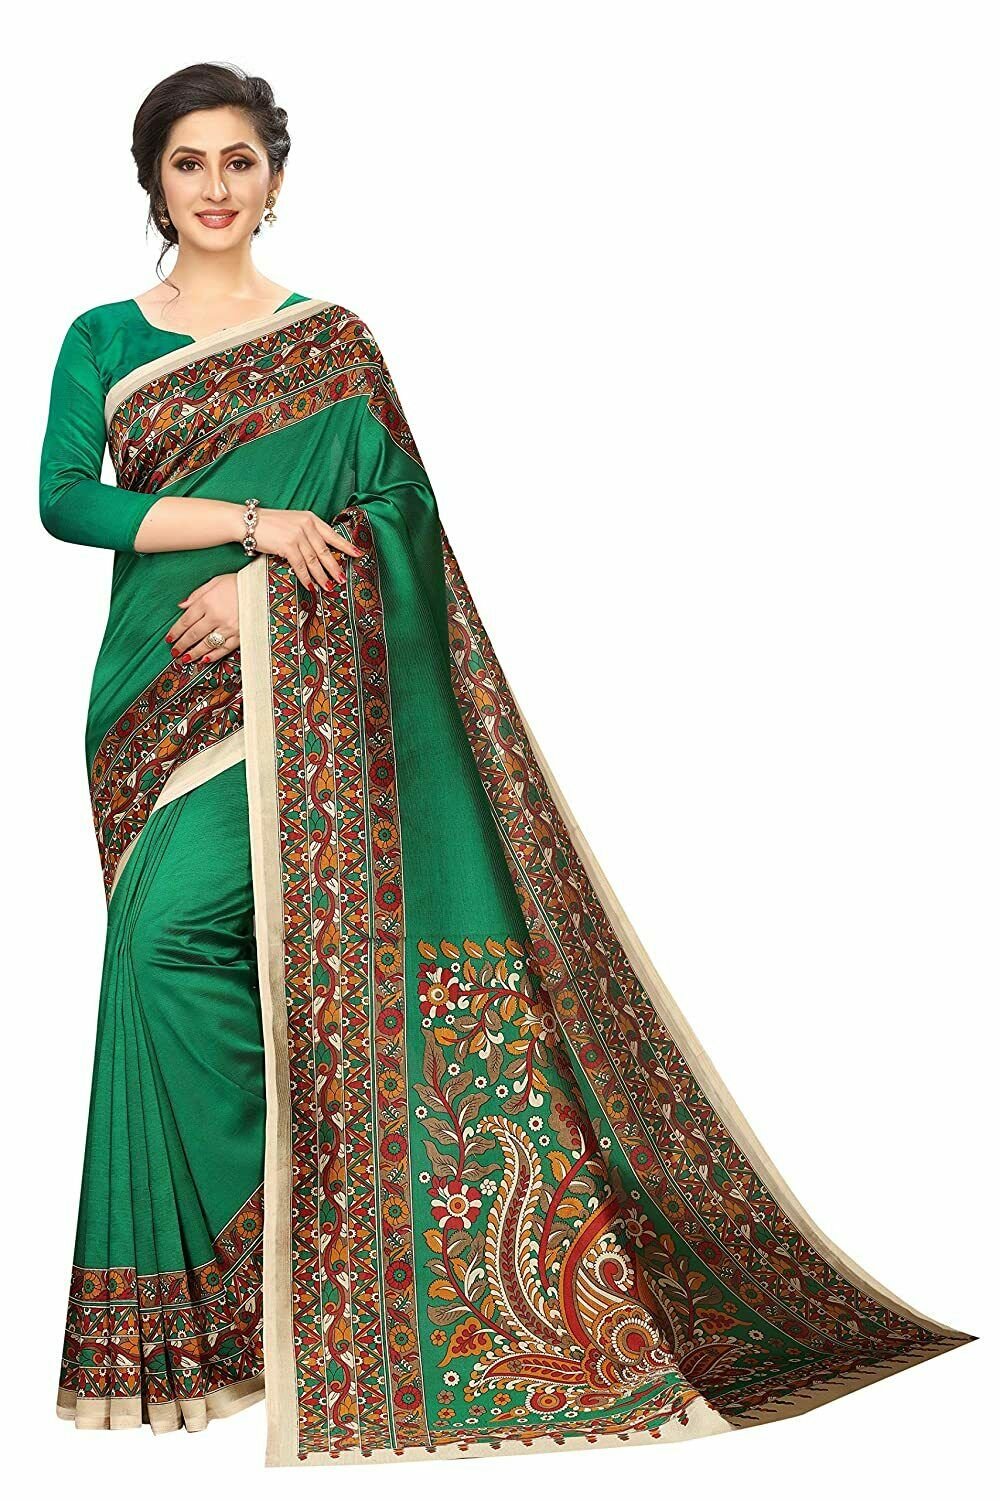 Women's Art Silk Saree With Unstitched Blouse - Free Shipping